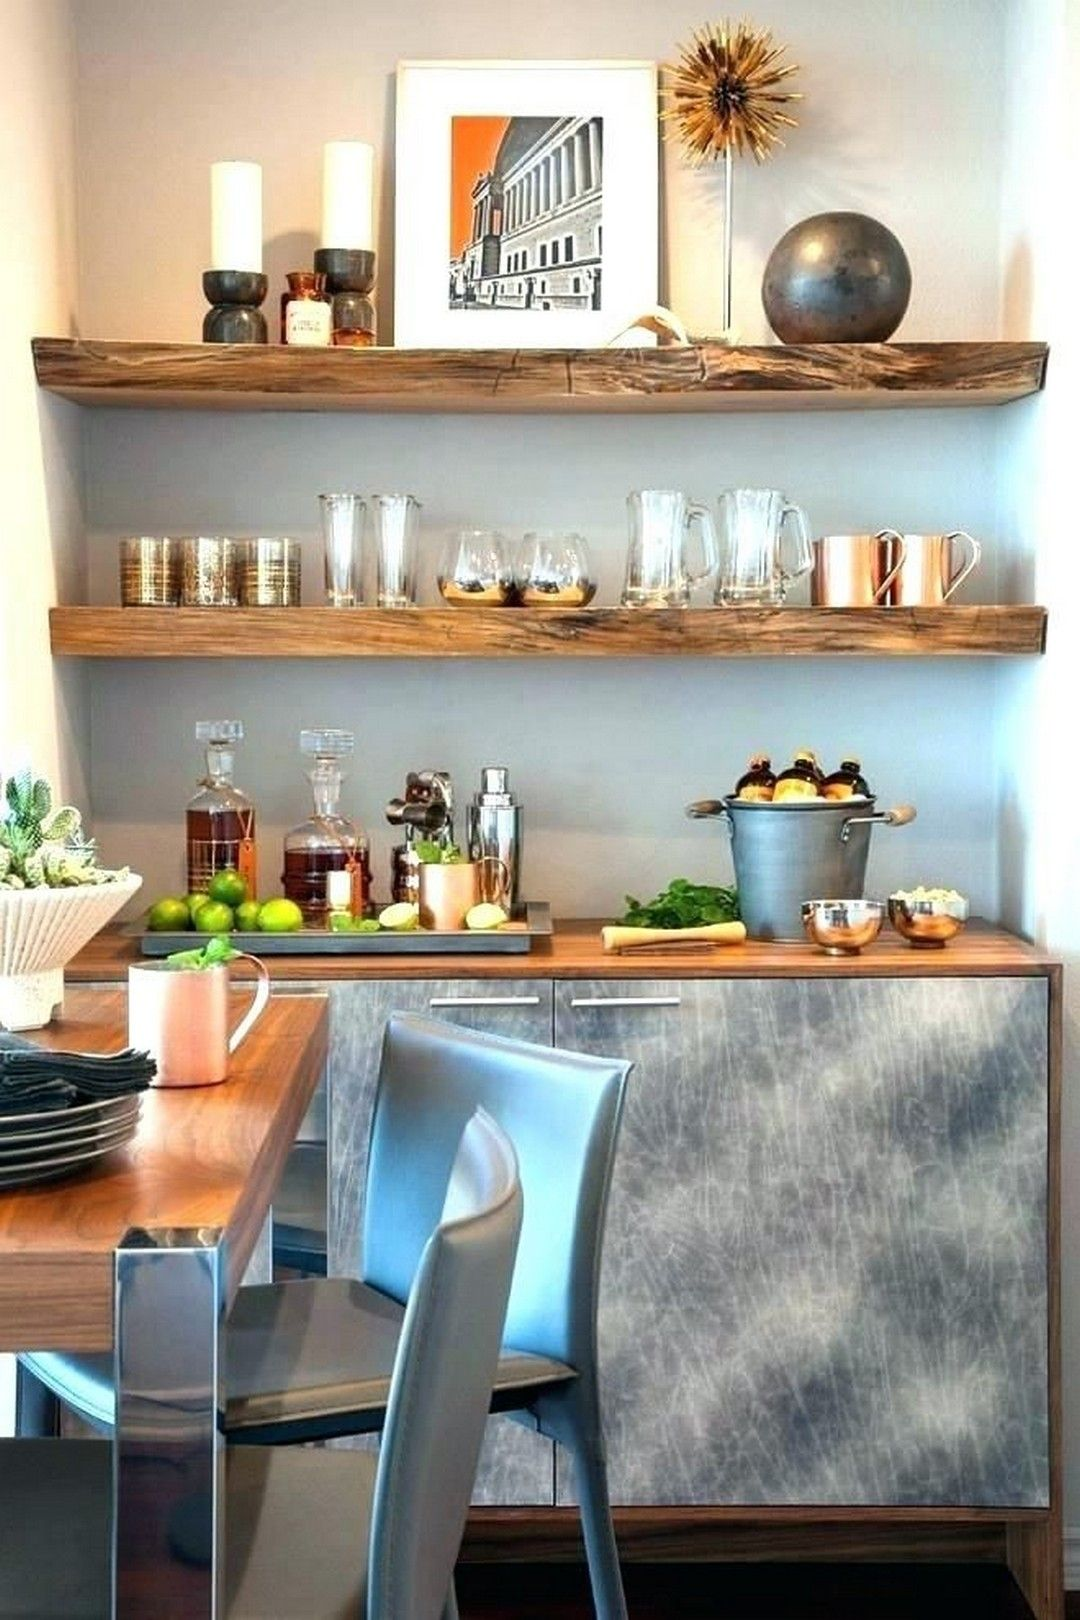 32 Dining Room Storage With Floating Shelves images